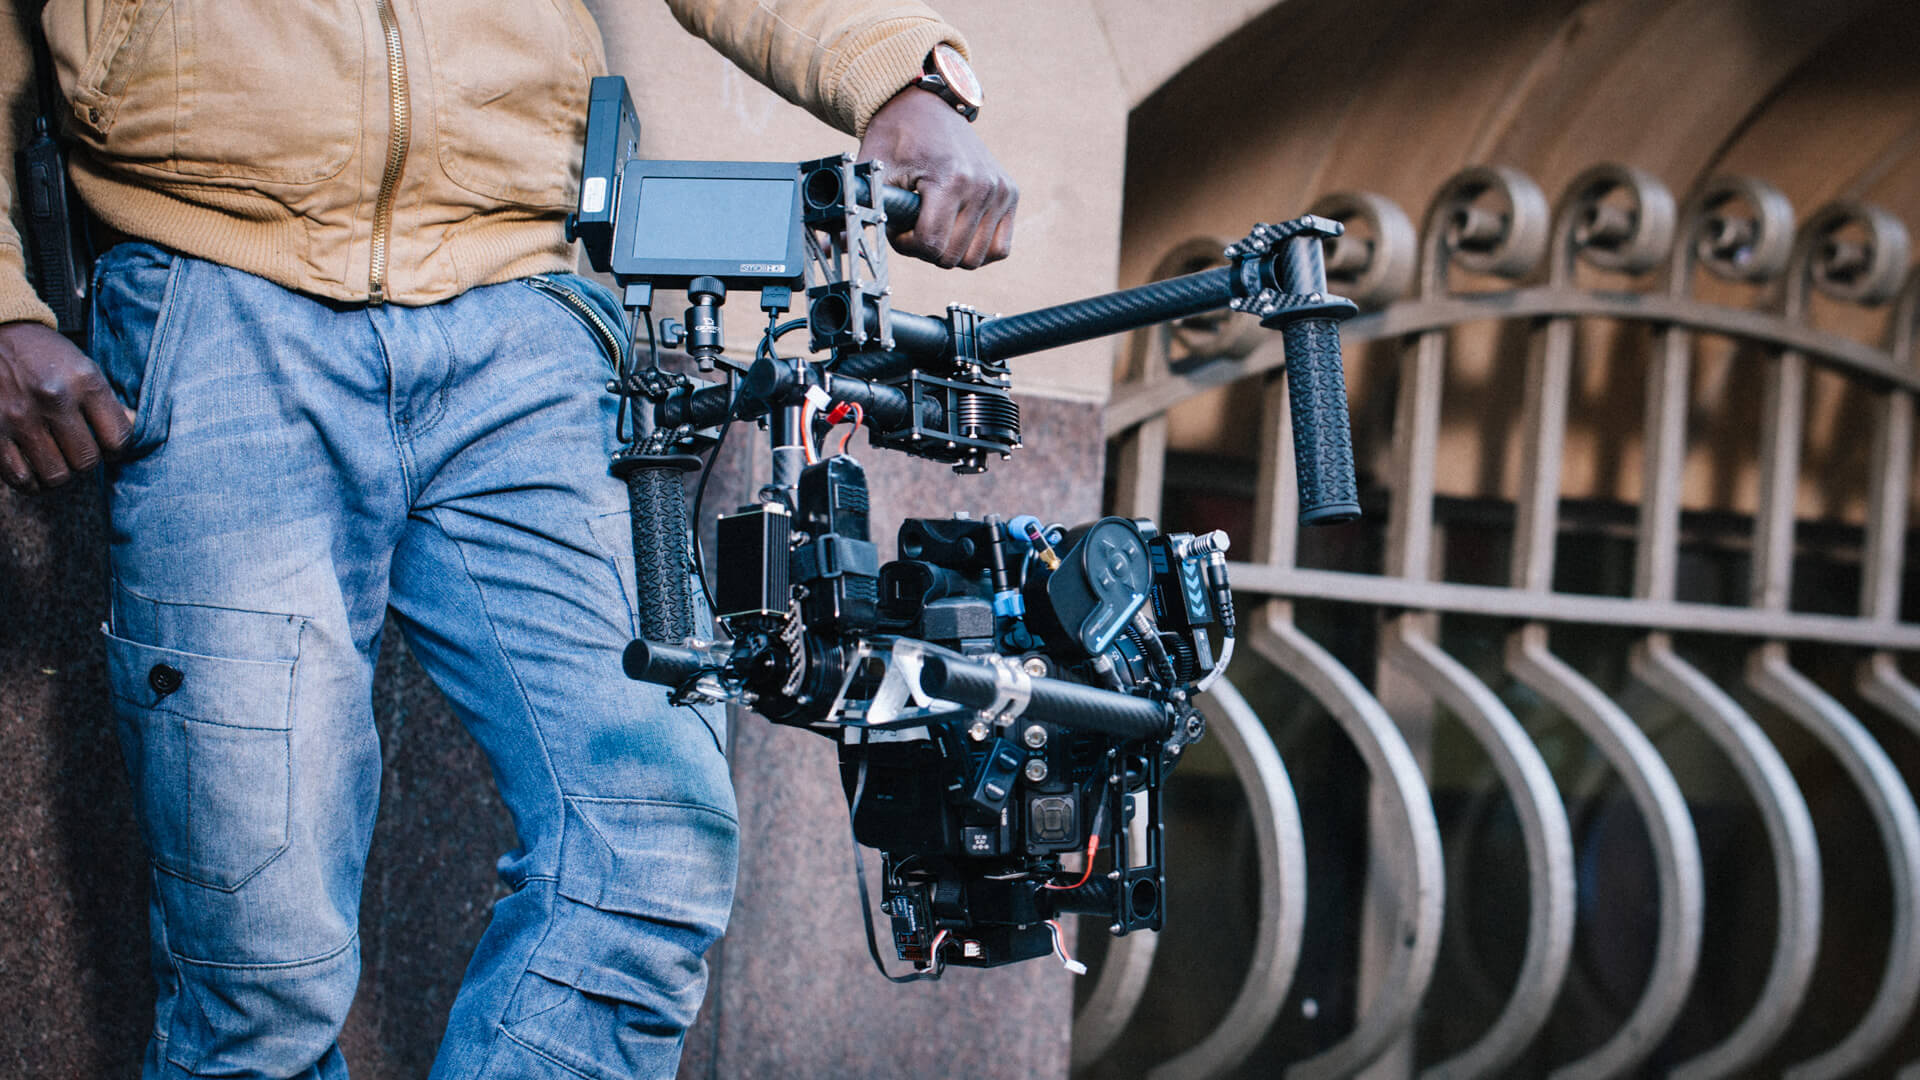 MoVI Operator Sam Nuttmann - South Africa - Allan Gray - Freefly MoVI M10 prototype